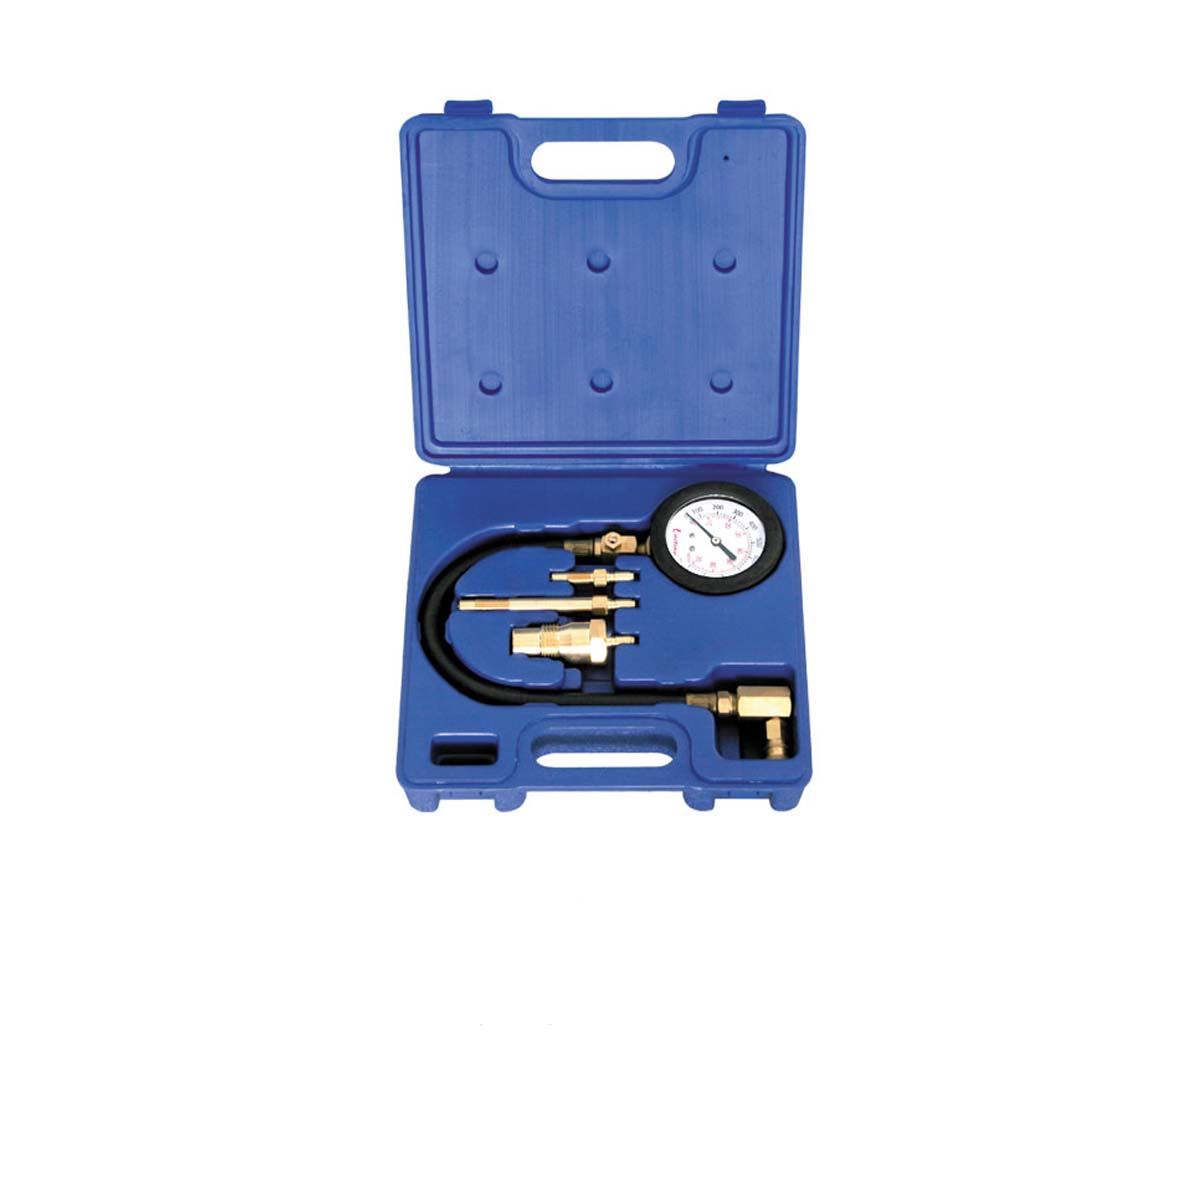 DIESEL COMPRESSION TESTER SET